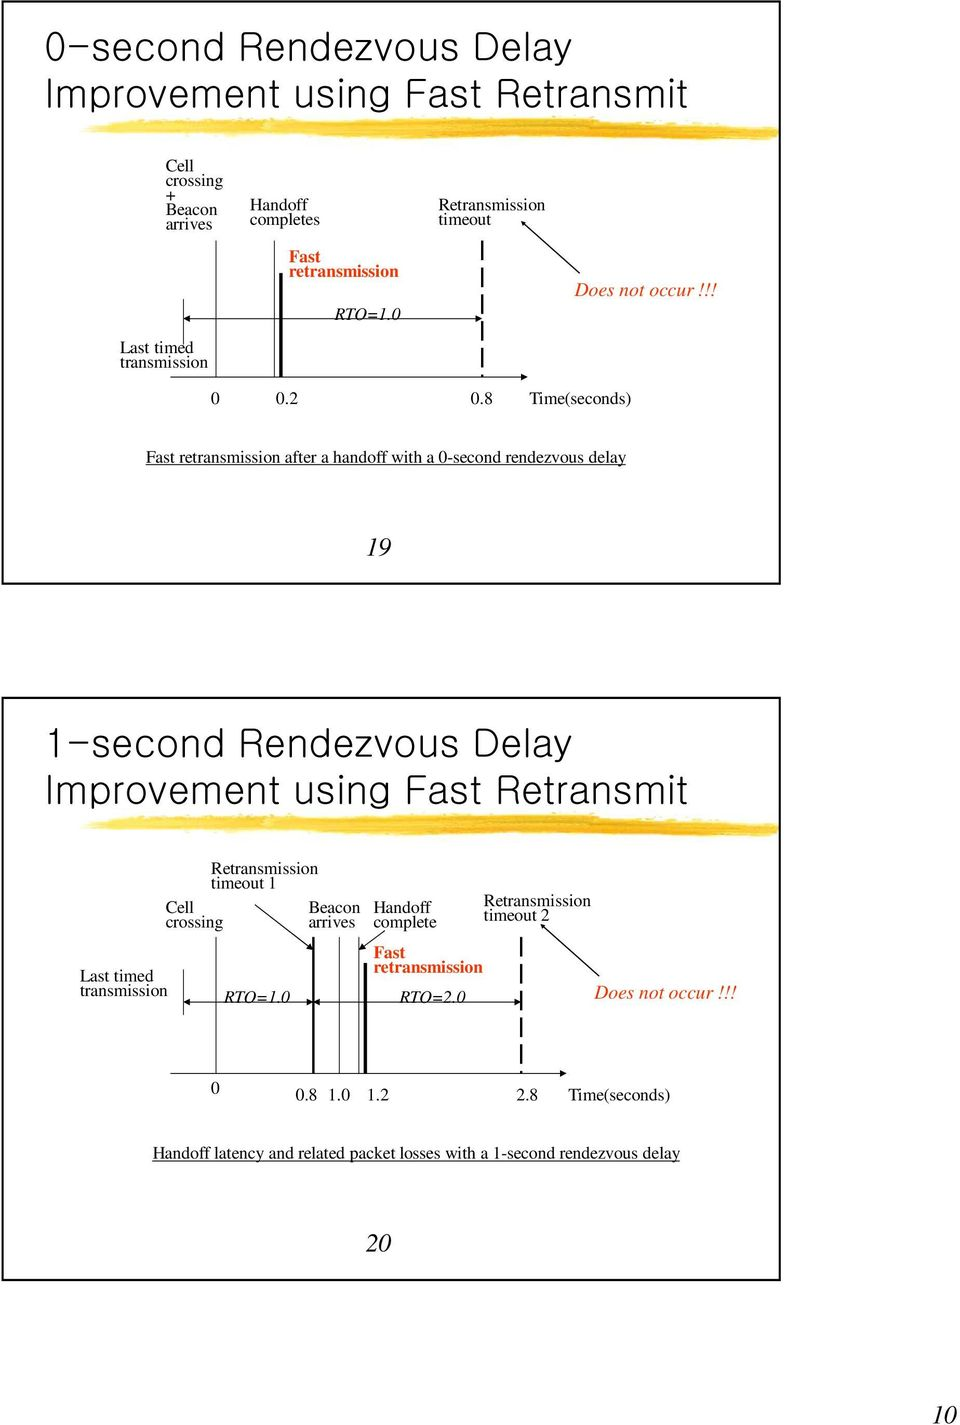 8 Time(seconds) Fast retransmission after a handoff with a 0-second rendezvous delay 19 1-second Rendezvous Delay Improvement using Fast Retransmit Cell